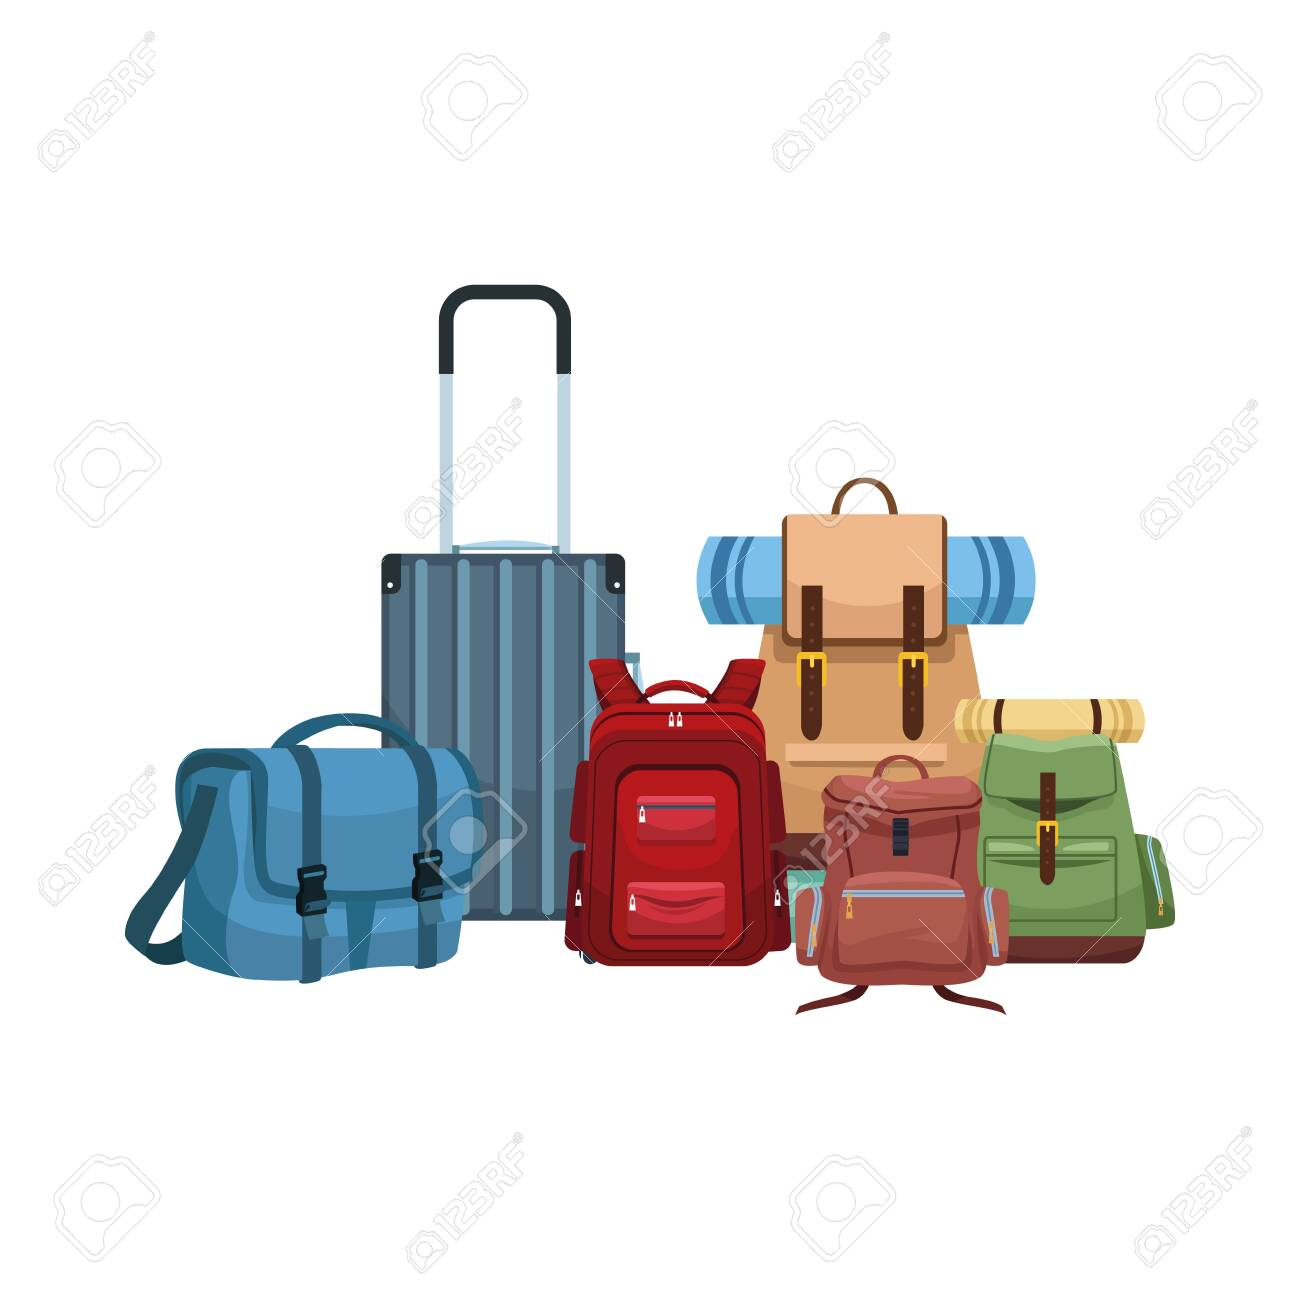 travel suitcase with bags and backpacks icon over white background, vector illustration - 134652678